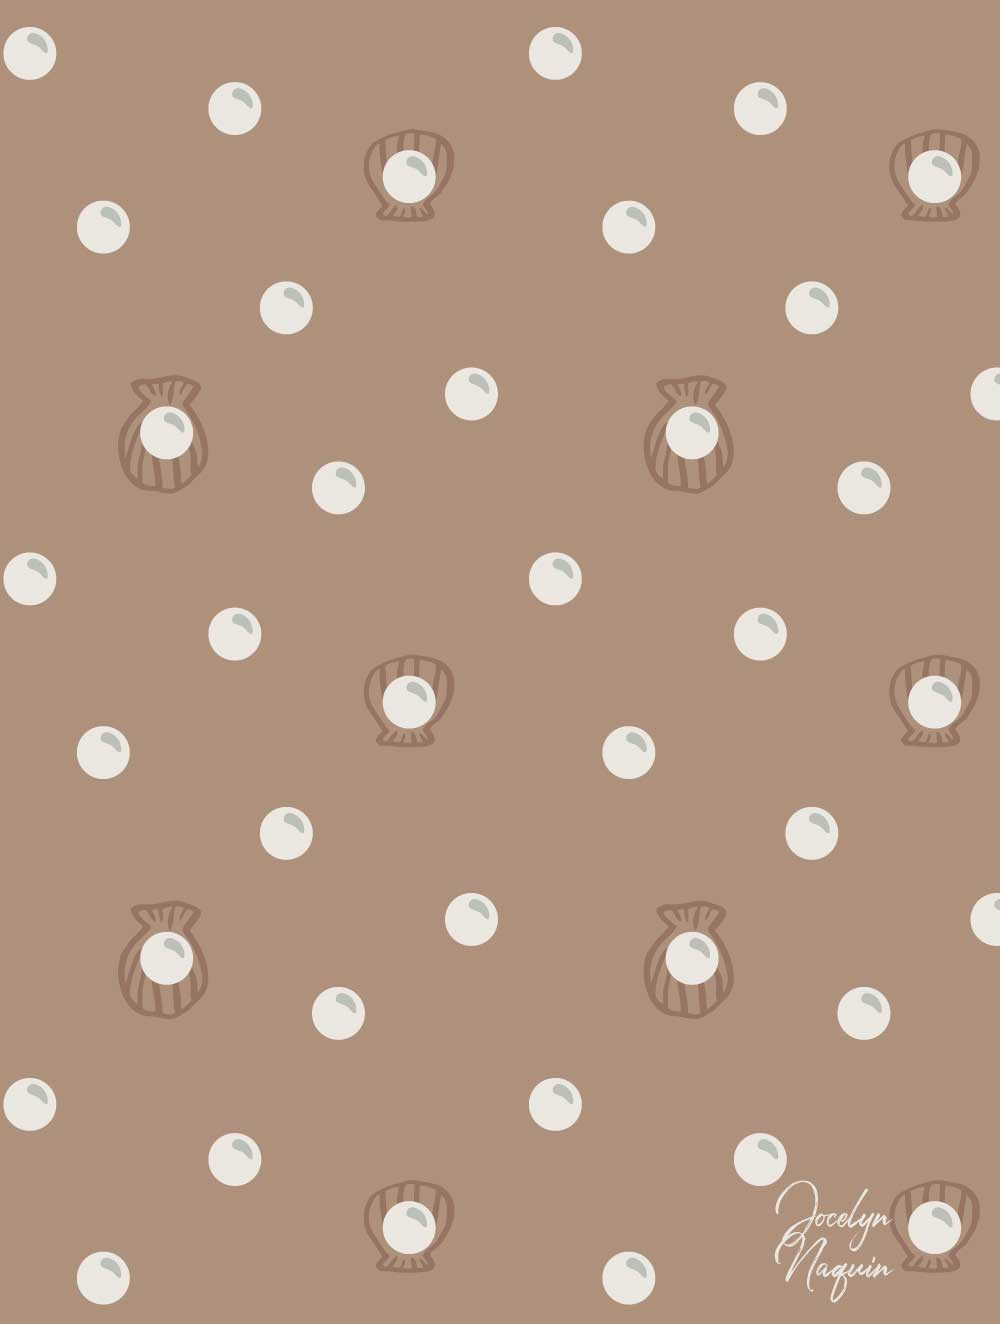 Pearl and Shells Surface Pattern Design